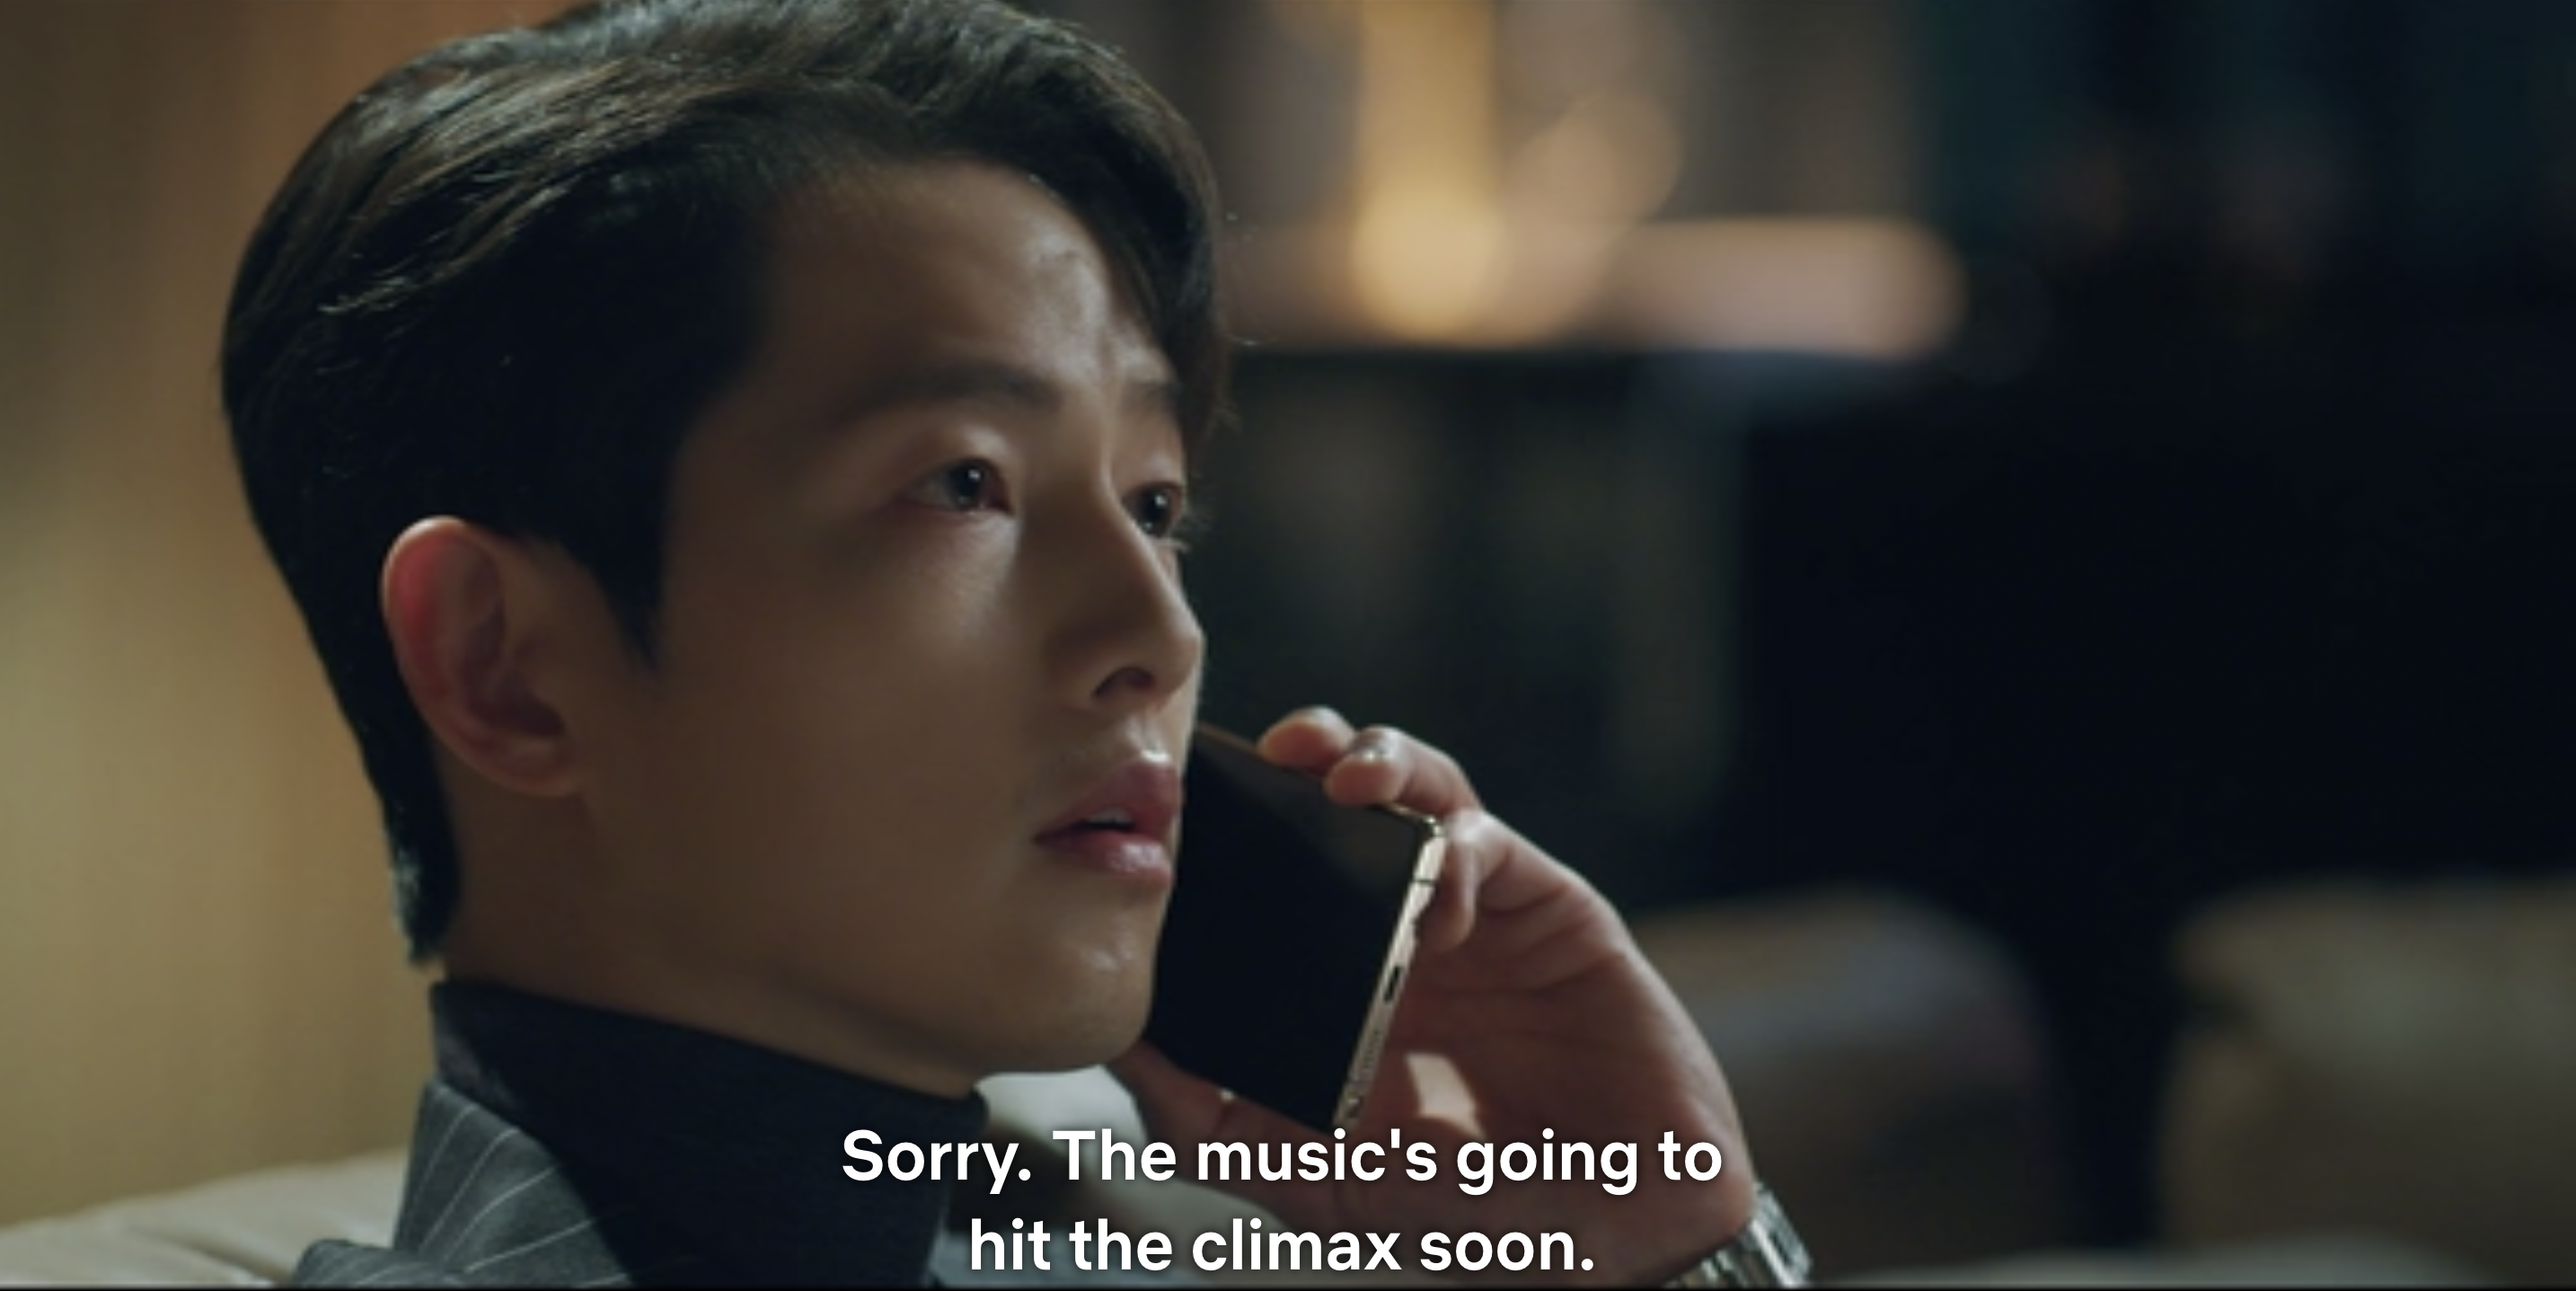 Vincenzo says 'sorry, the music's going to hit the climax soon' and hangs up on Jang Han-seok